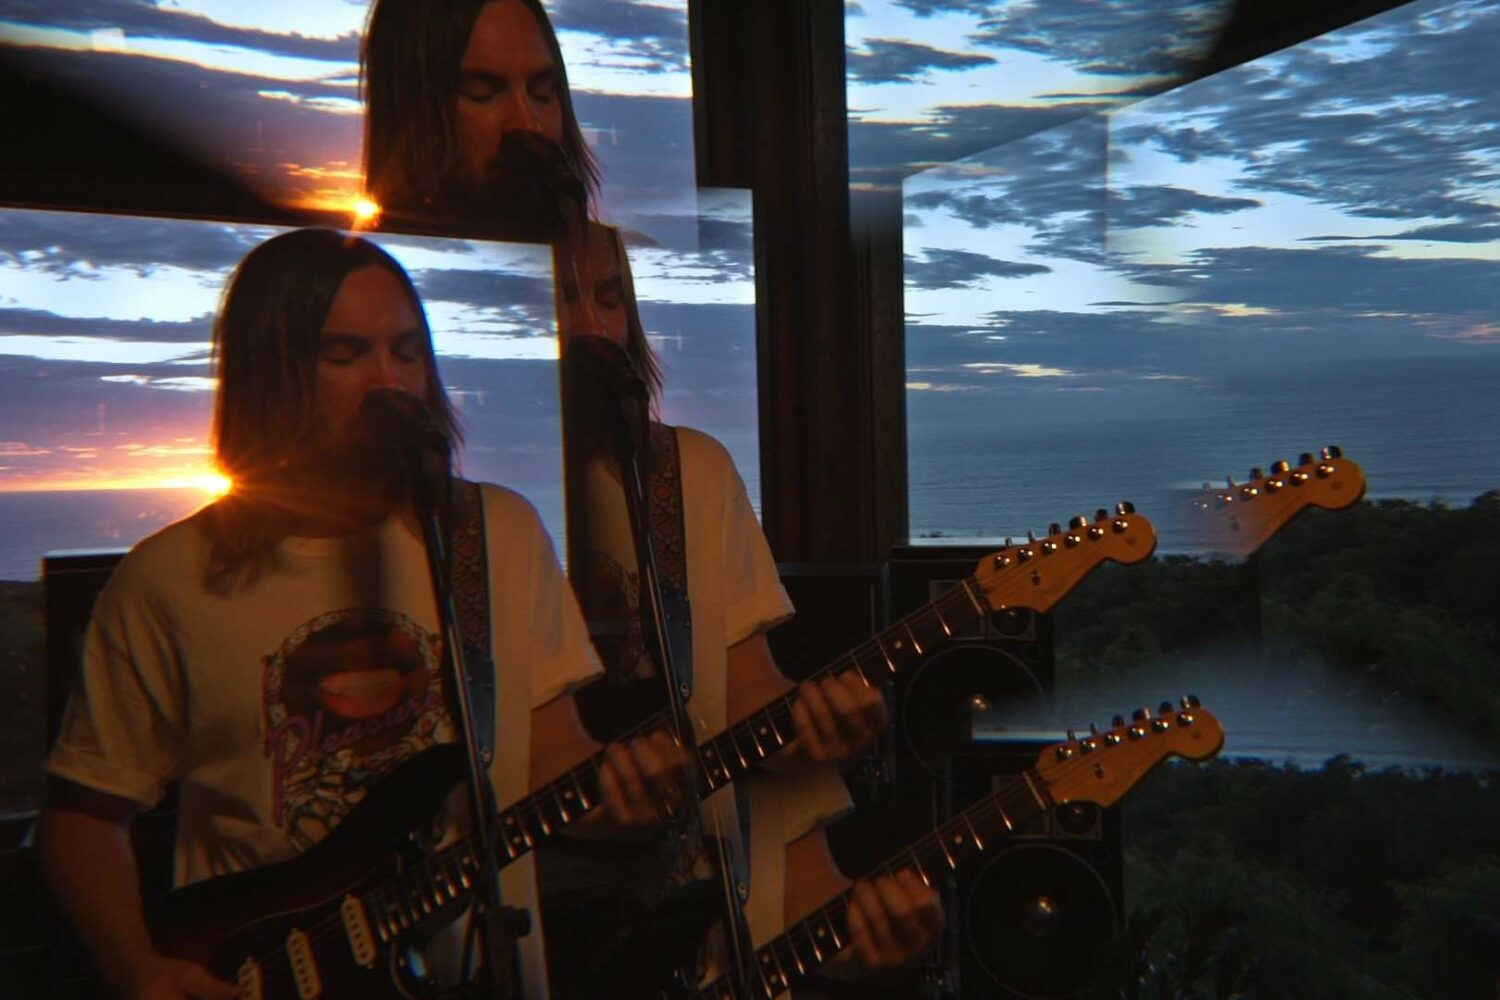 Tame Impala celebrate 'Innerspeaker' with Wave House live stream